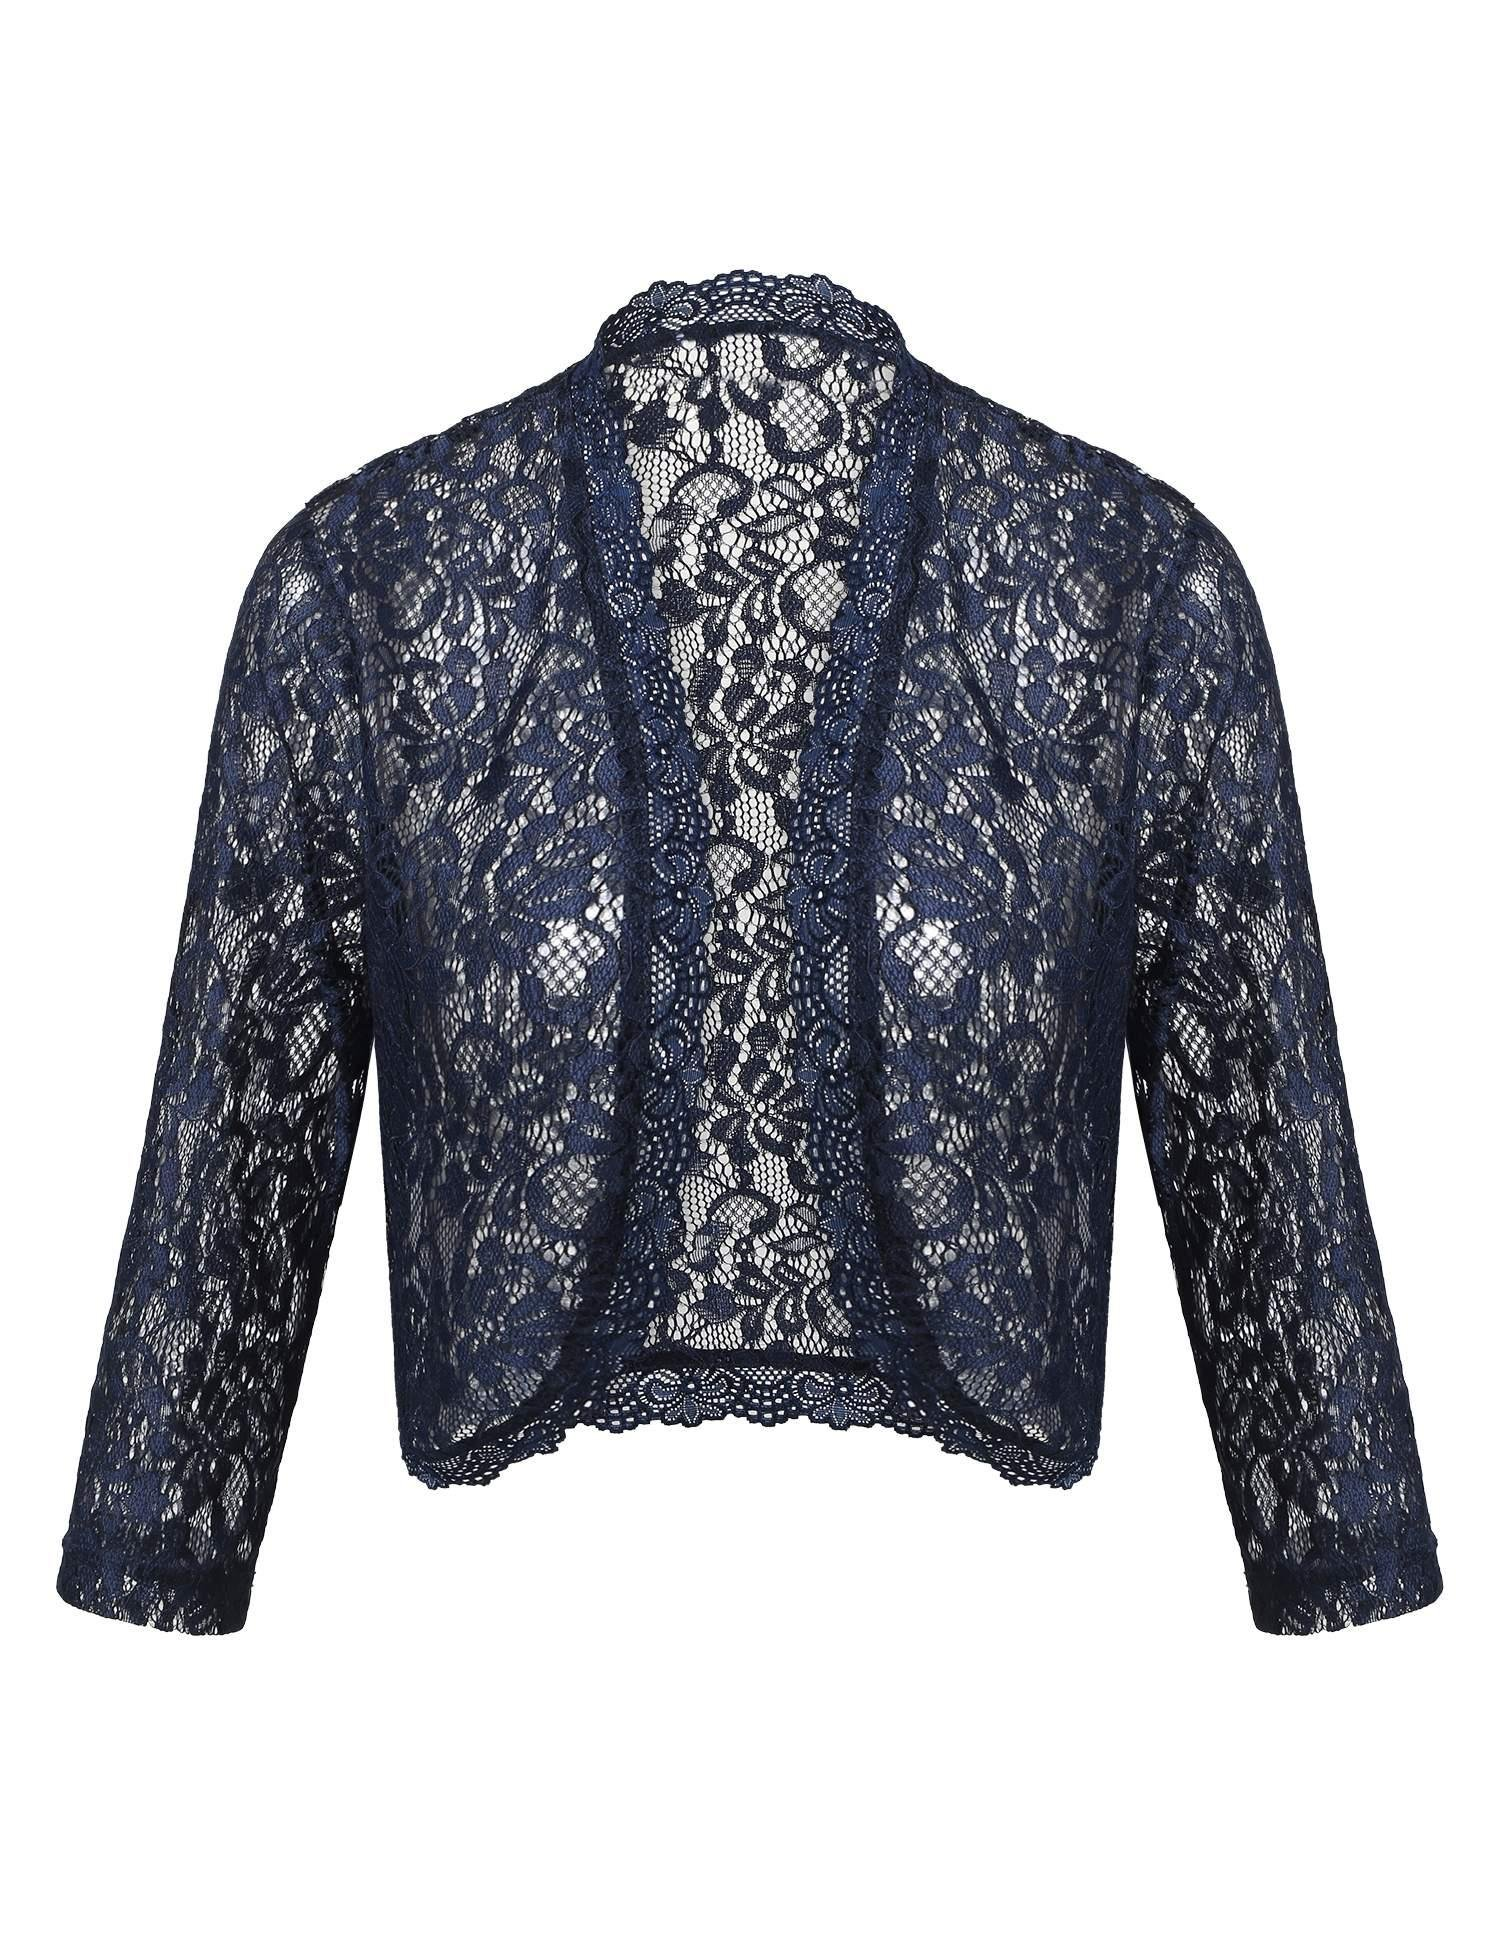 ThinIce Lace Bolero Ladies Crochet Summer Sheer Cardigans Long Sleeve Party Jackets (Navy Blue, M)